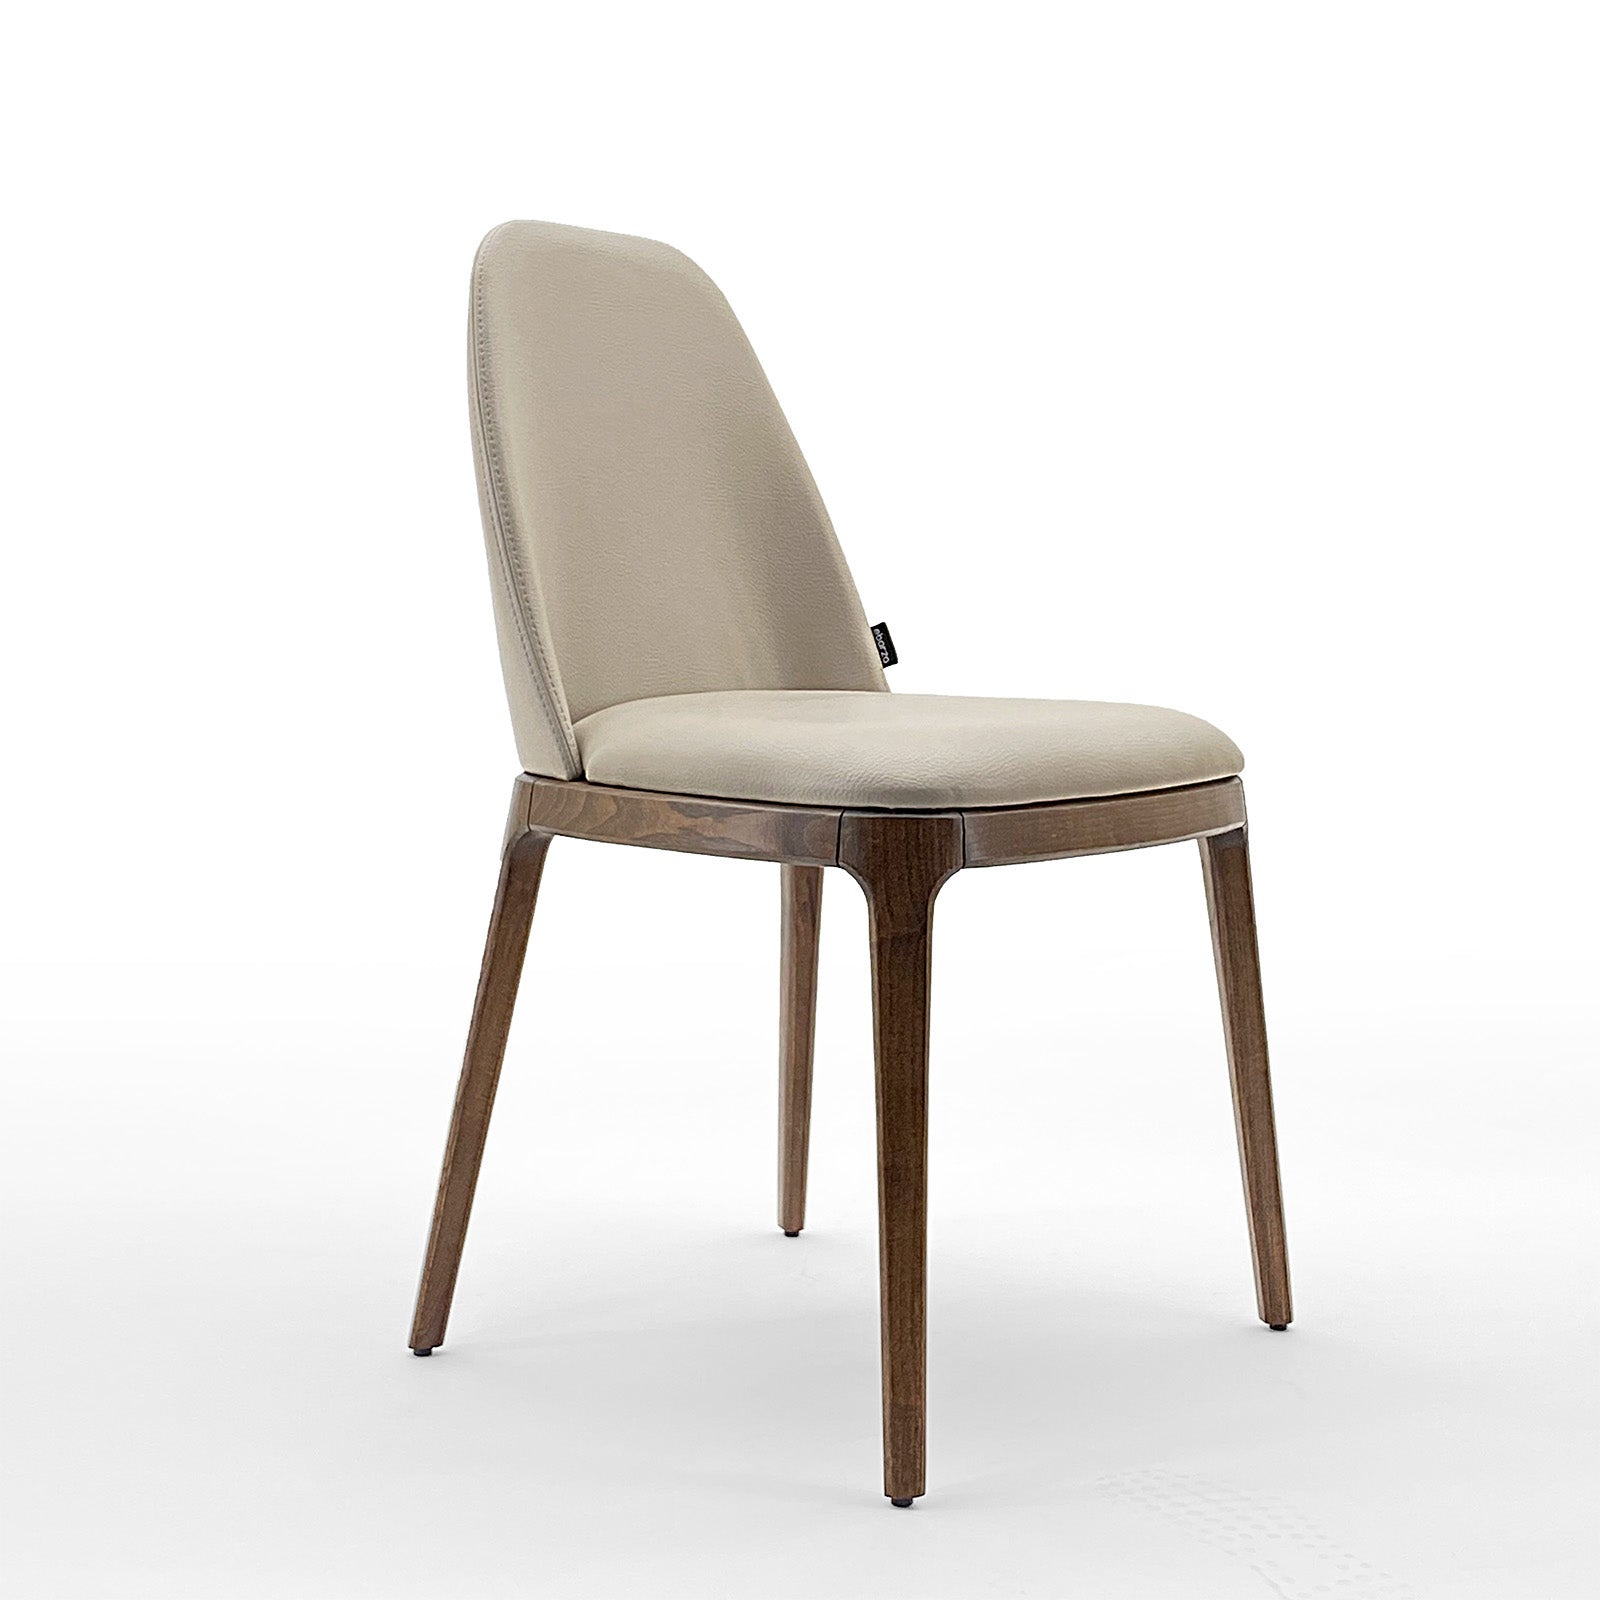 Nirvana Solid Ash Wood Chair Nirvanawithnoarm-W-2618 - ebarza